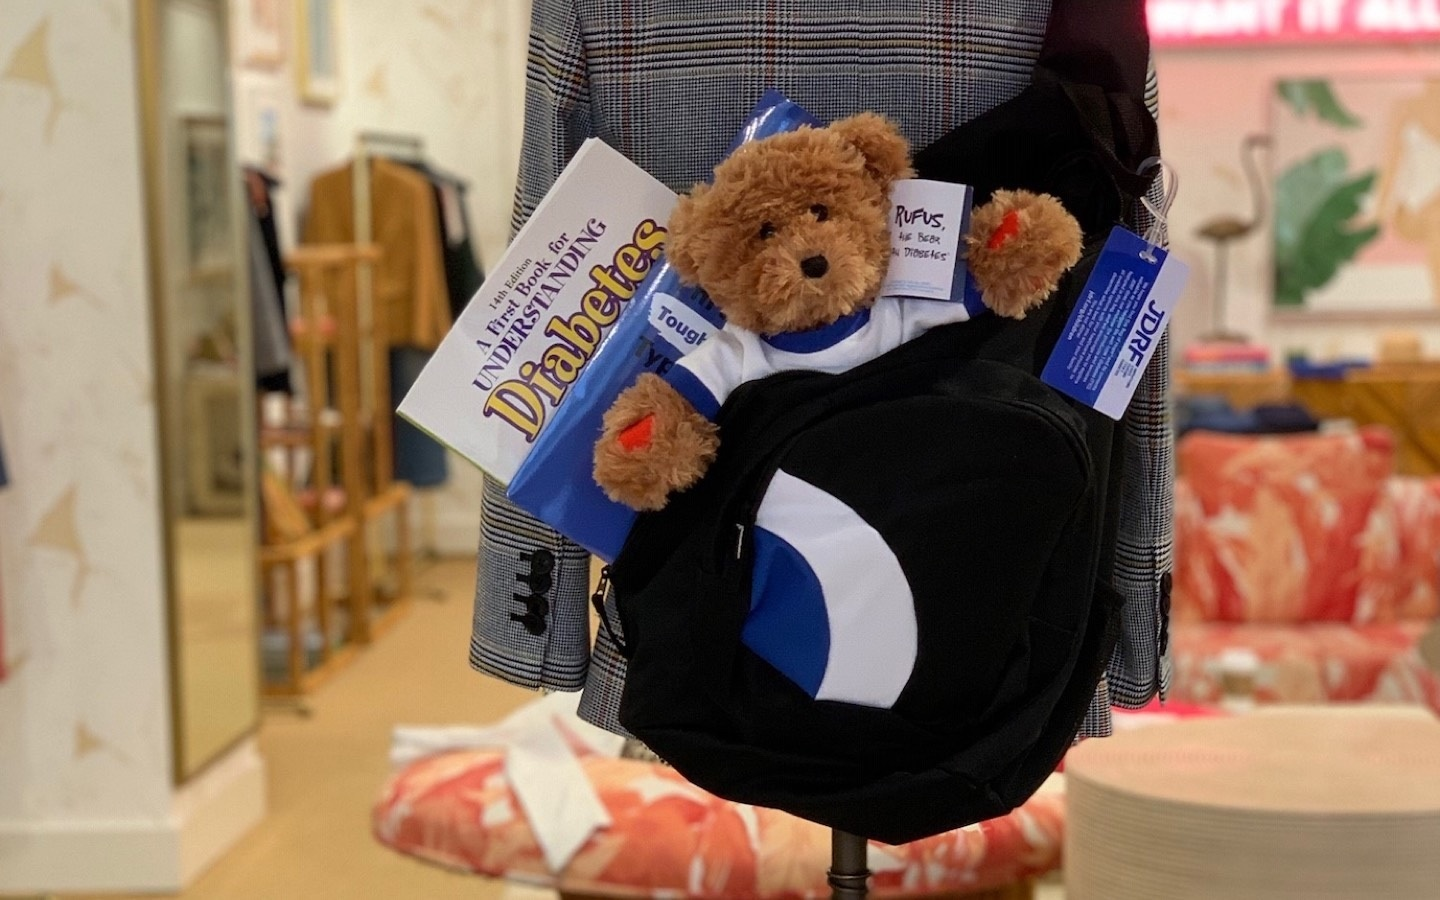 Photo of Rufus The Bear with Diabetes and other Bag of Hope items in a bookbag hanging in a Veronica Beard store.